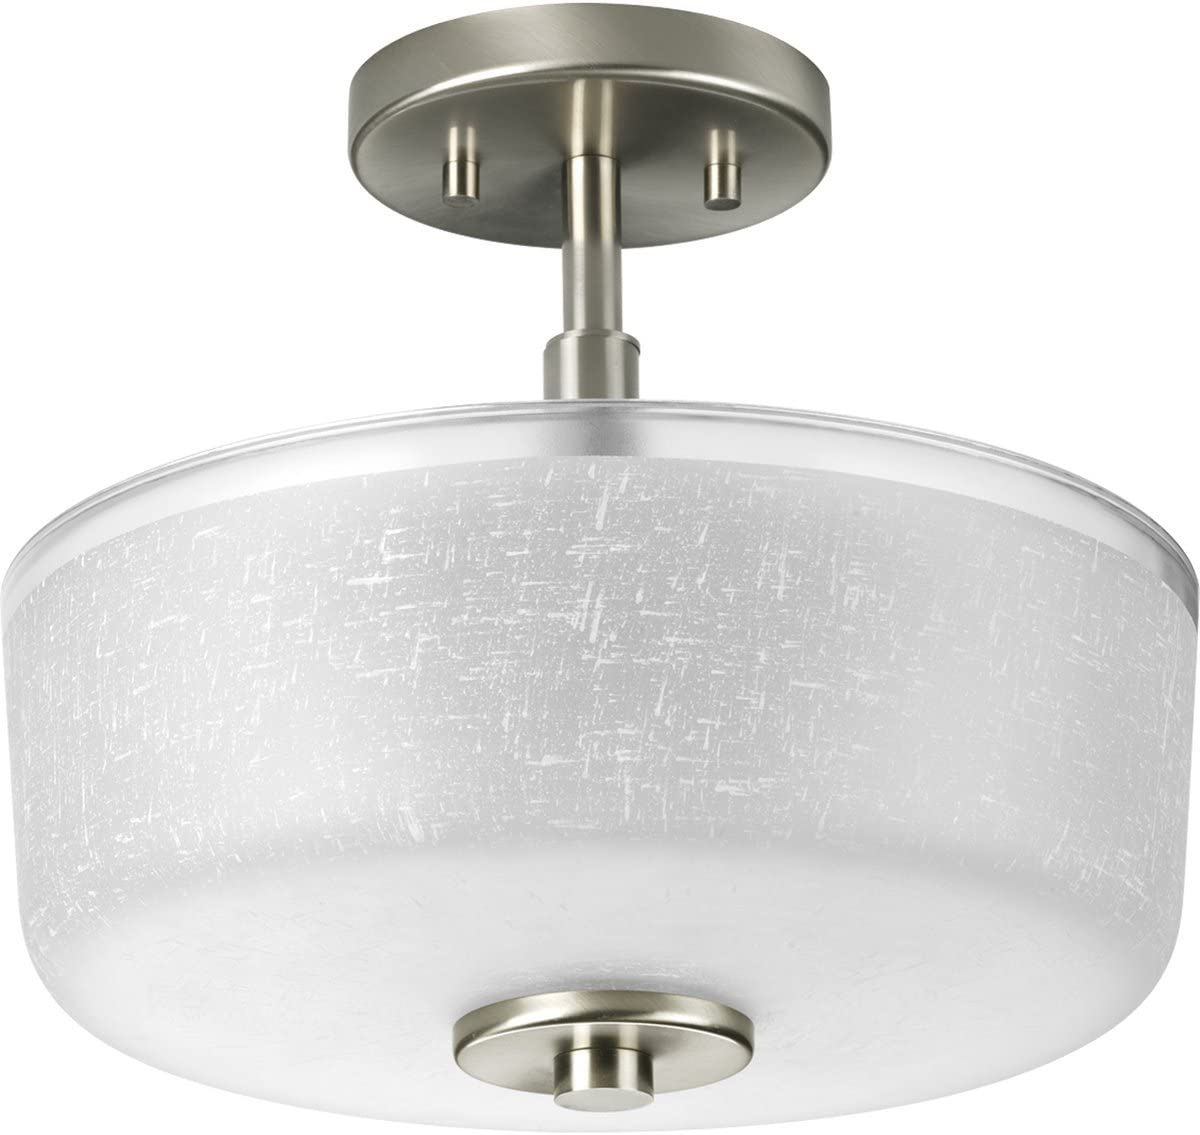 Amazon Com Progress Lighting P2851 09 2 Light Semi Flush With White Linen Finished Glass And A Clear Edge Accent Strip Brushed Nickel Home Improvement